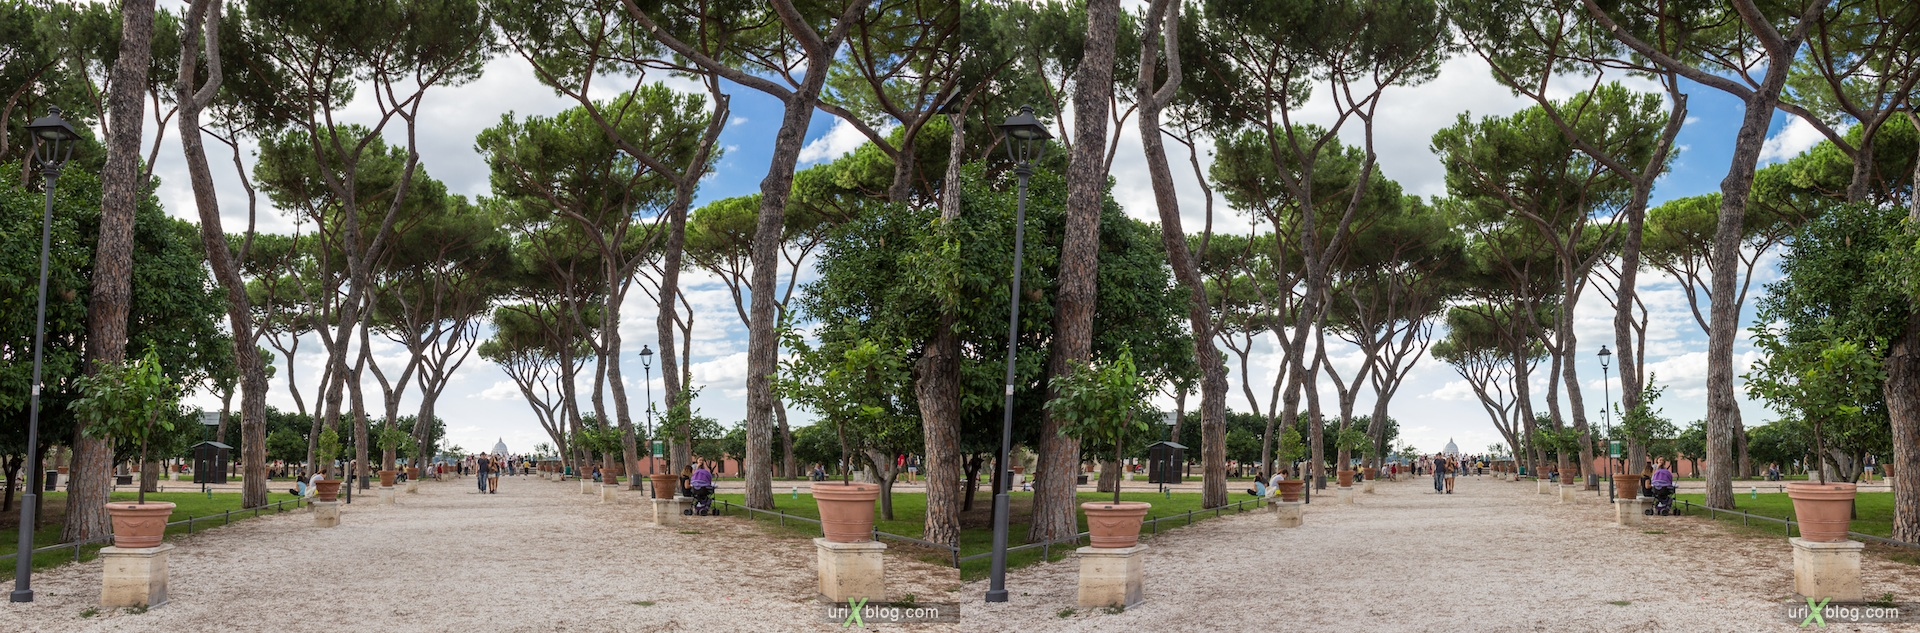 2012, garden of the oranges, Savello park, basilica of Santa Sabina, viewpoint, Rome, Italy, Europe, 3D, stereo pair, cross-eyed, crossview, cross view stereo pair